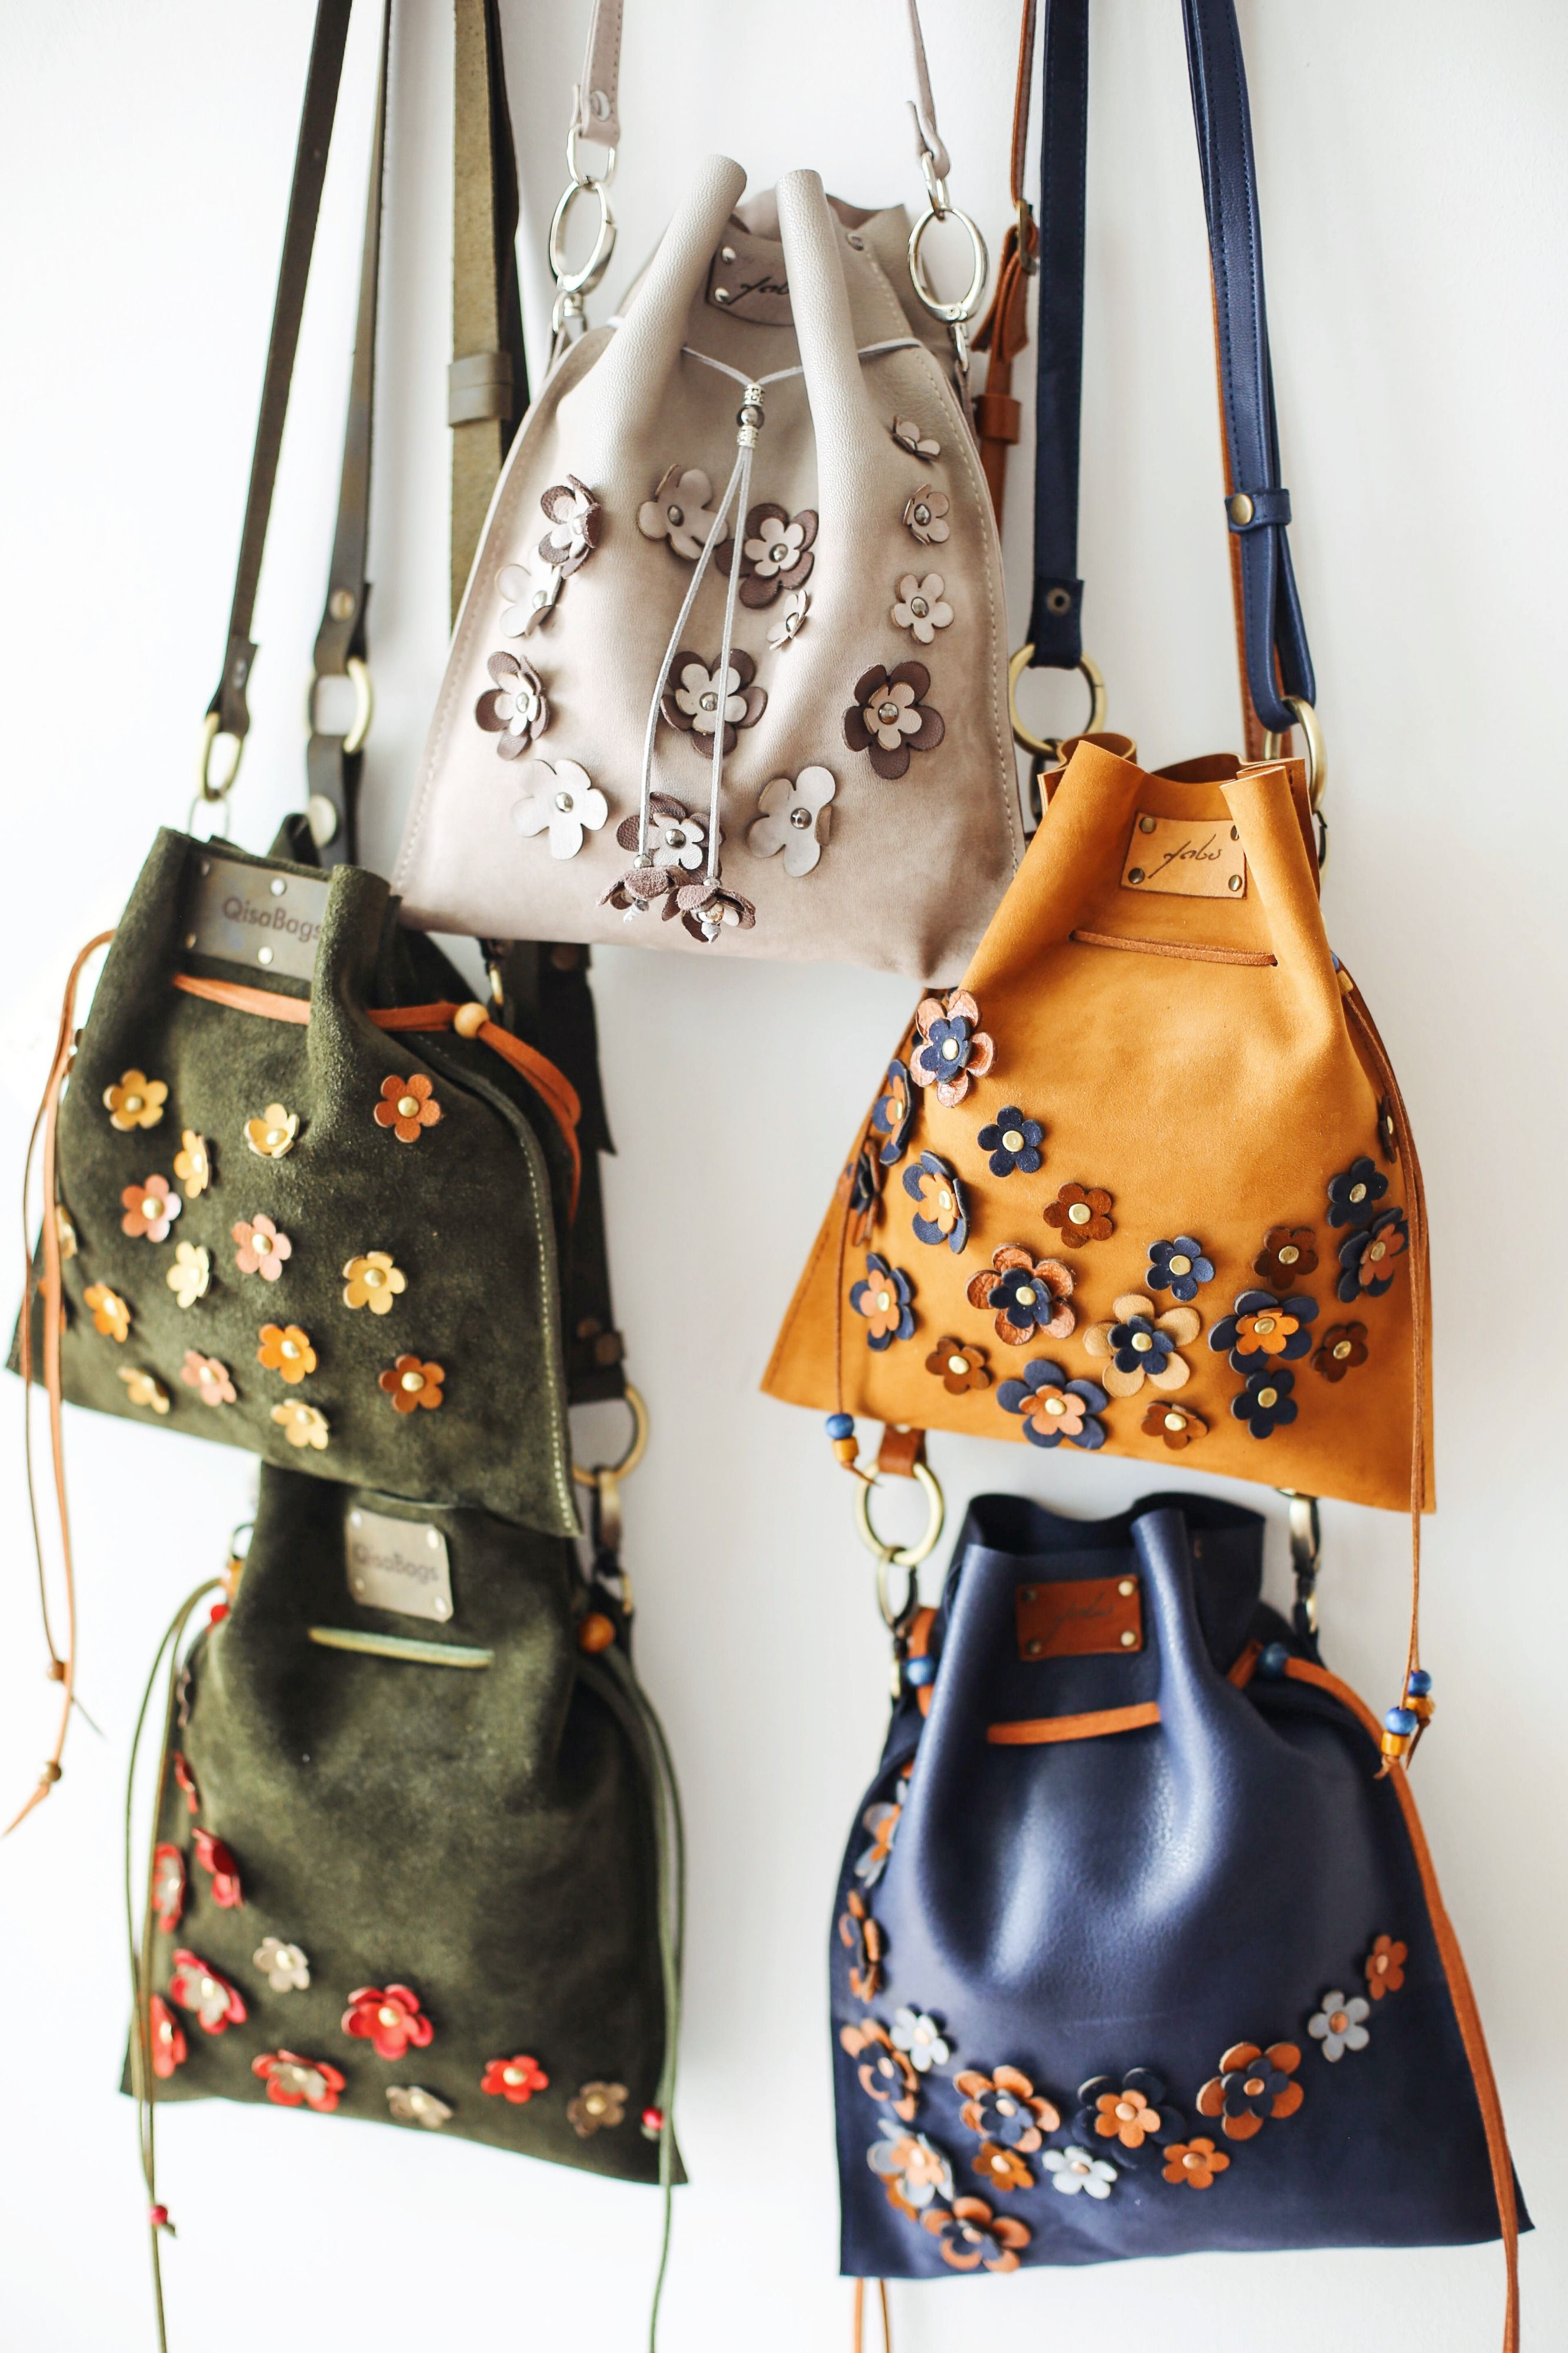 Crossbody Leather Bag Bucket Bag Small Leather Purse Etsy In 2020 Small Leather Purse Bucket Bag Floral Bags